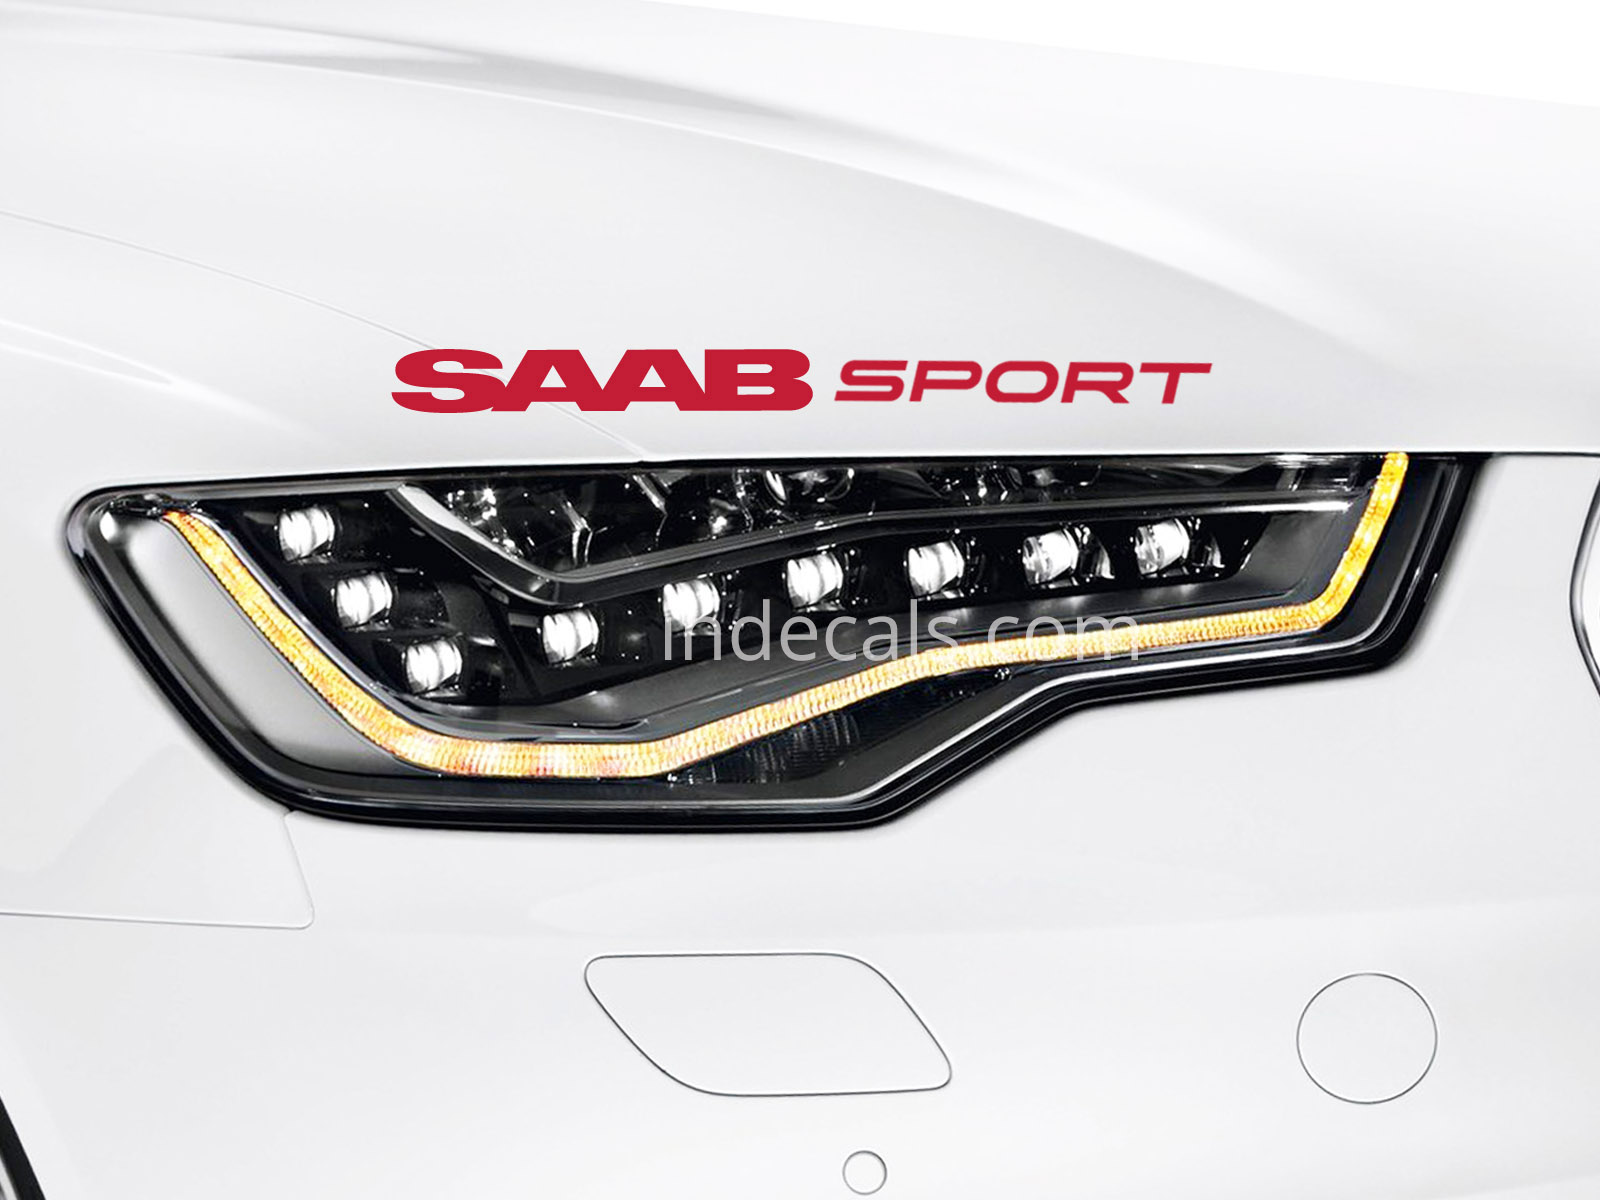 1 x Saab Sport Sticker - Red